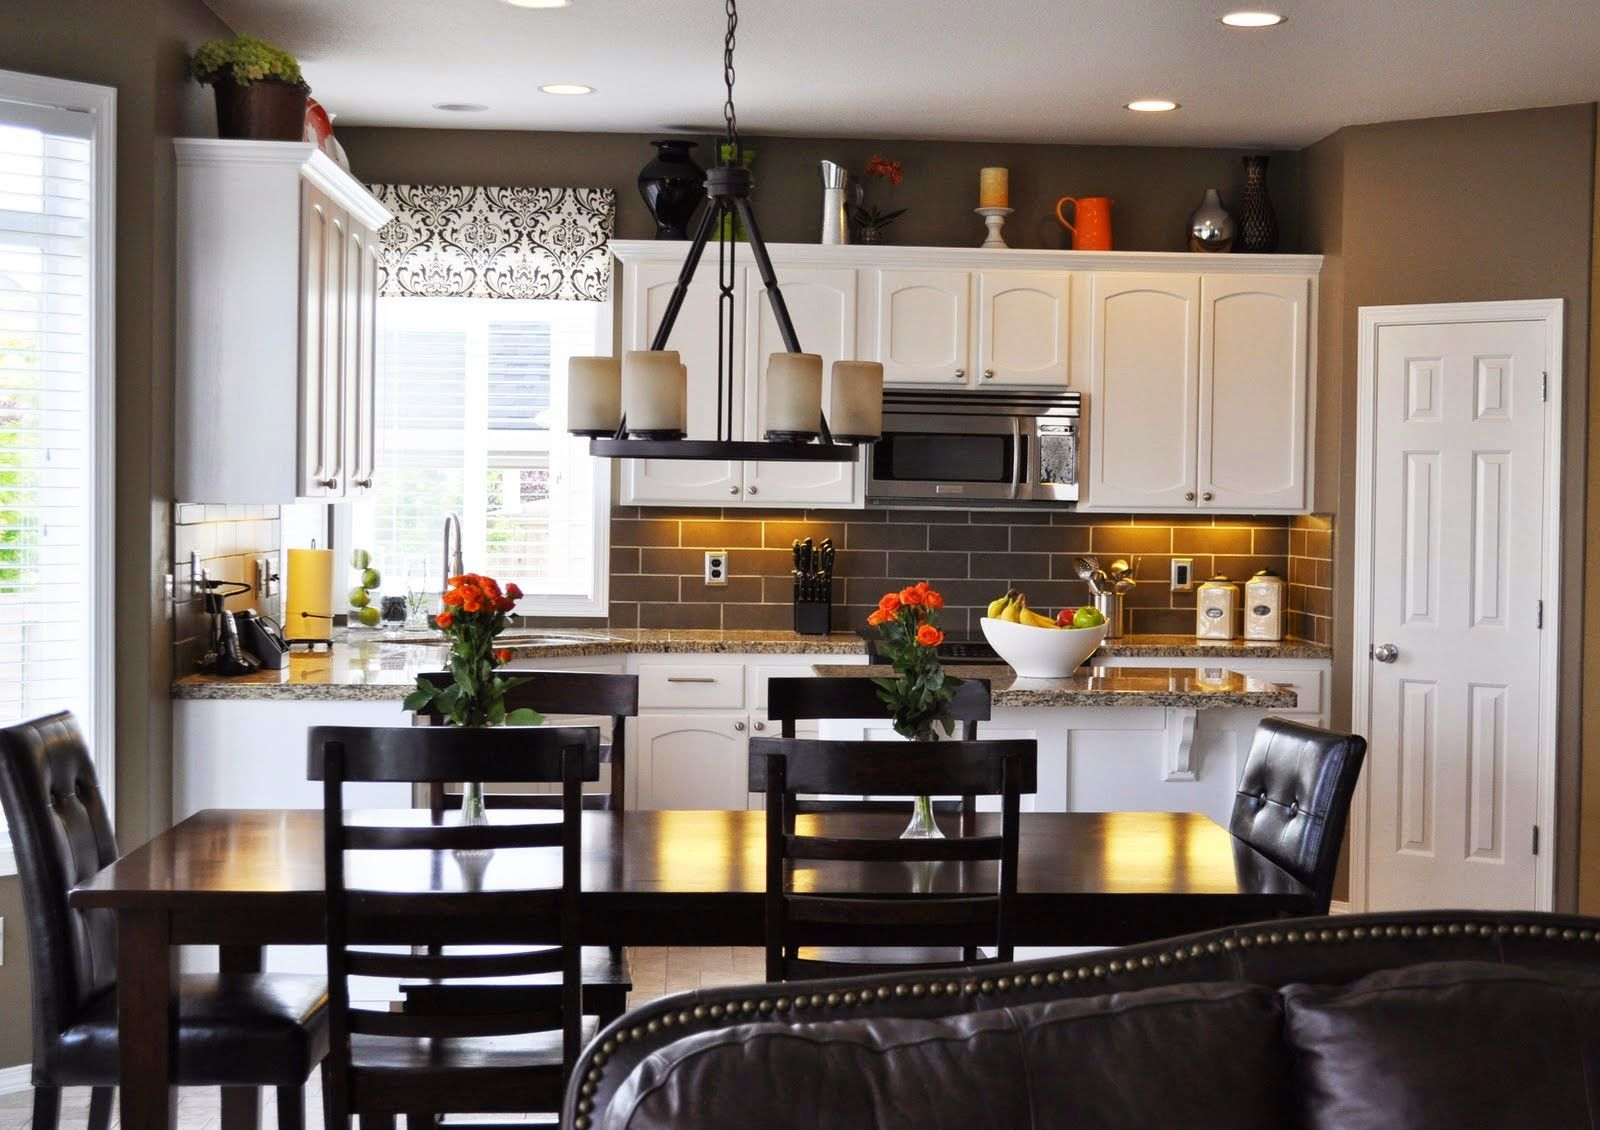 2019 How Much To Have Kitchen Cabinets Professionally Painted   Kitchen  Design And Layout Ideas Check